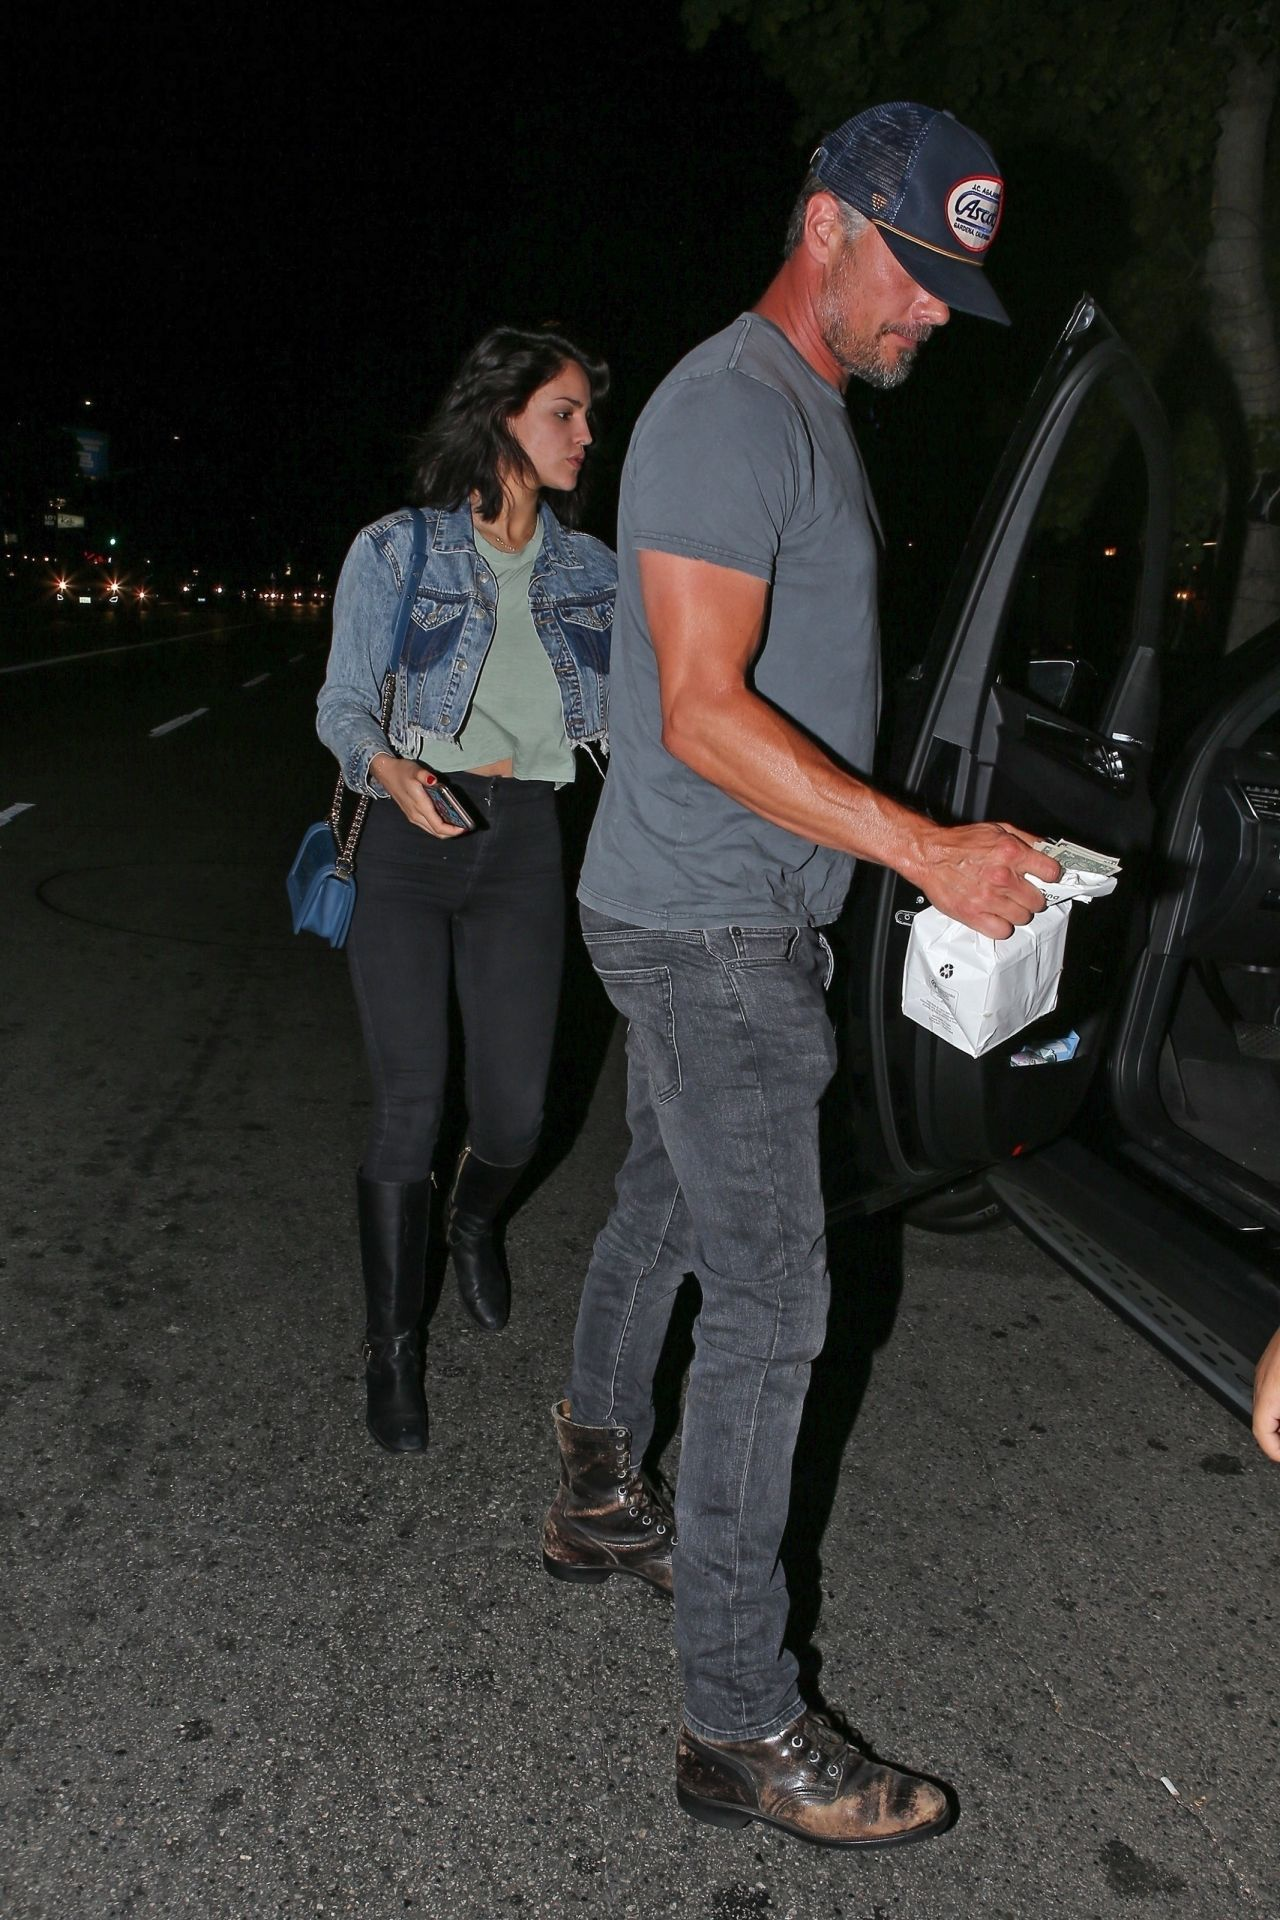 Eiza Gonzalez And Josh Duhamel At Antonio S Pizzeria In Sherman Oaks 06 10 2018